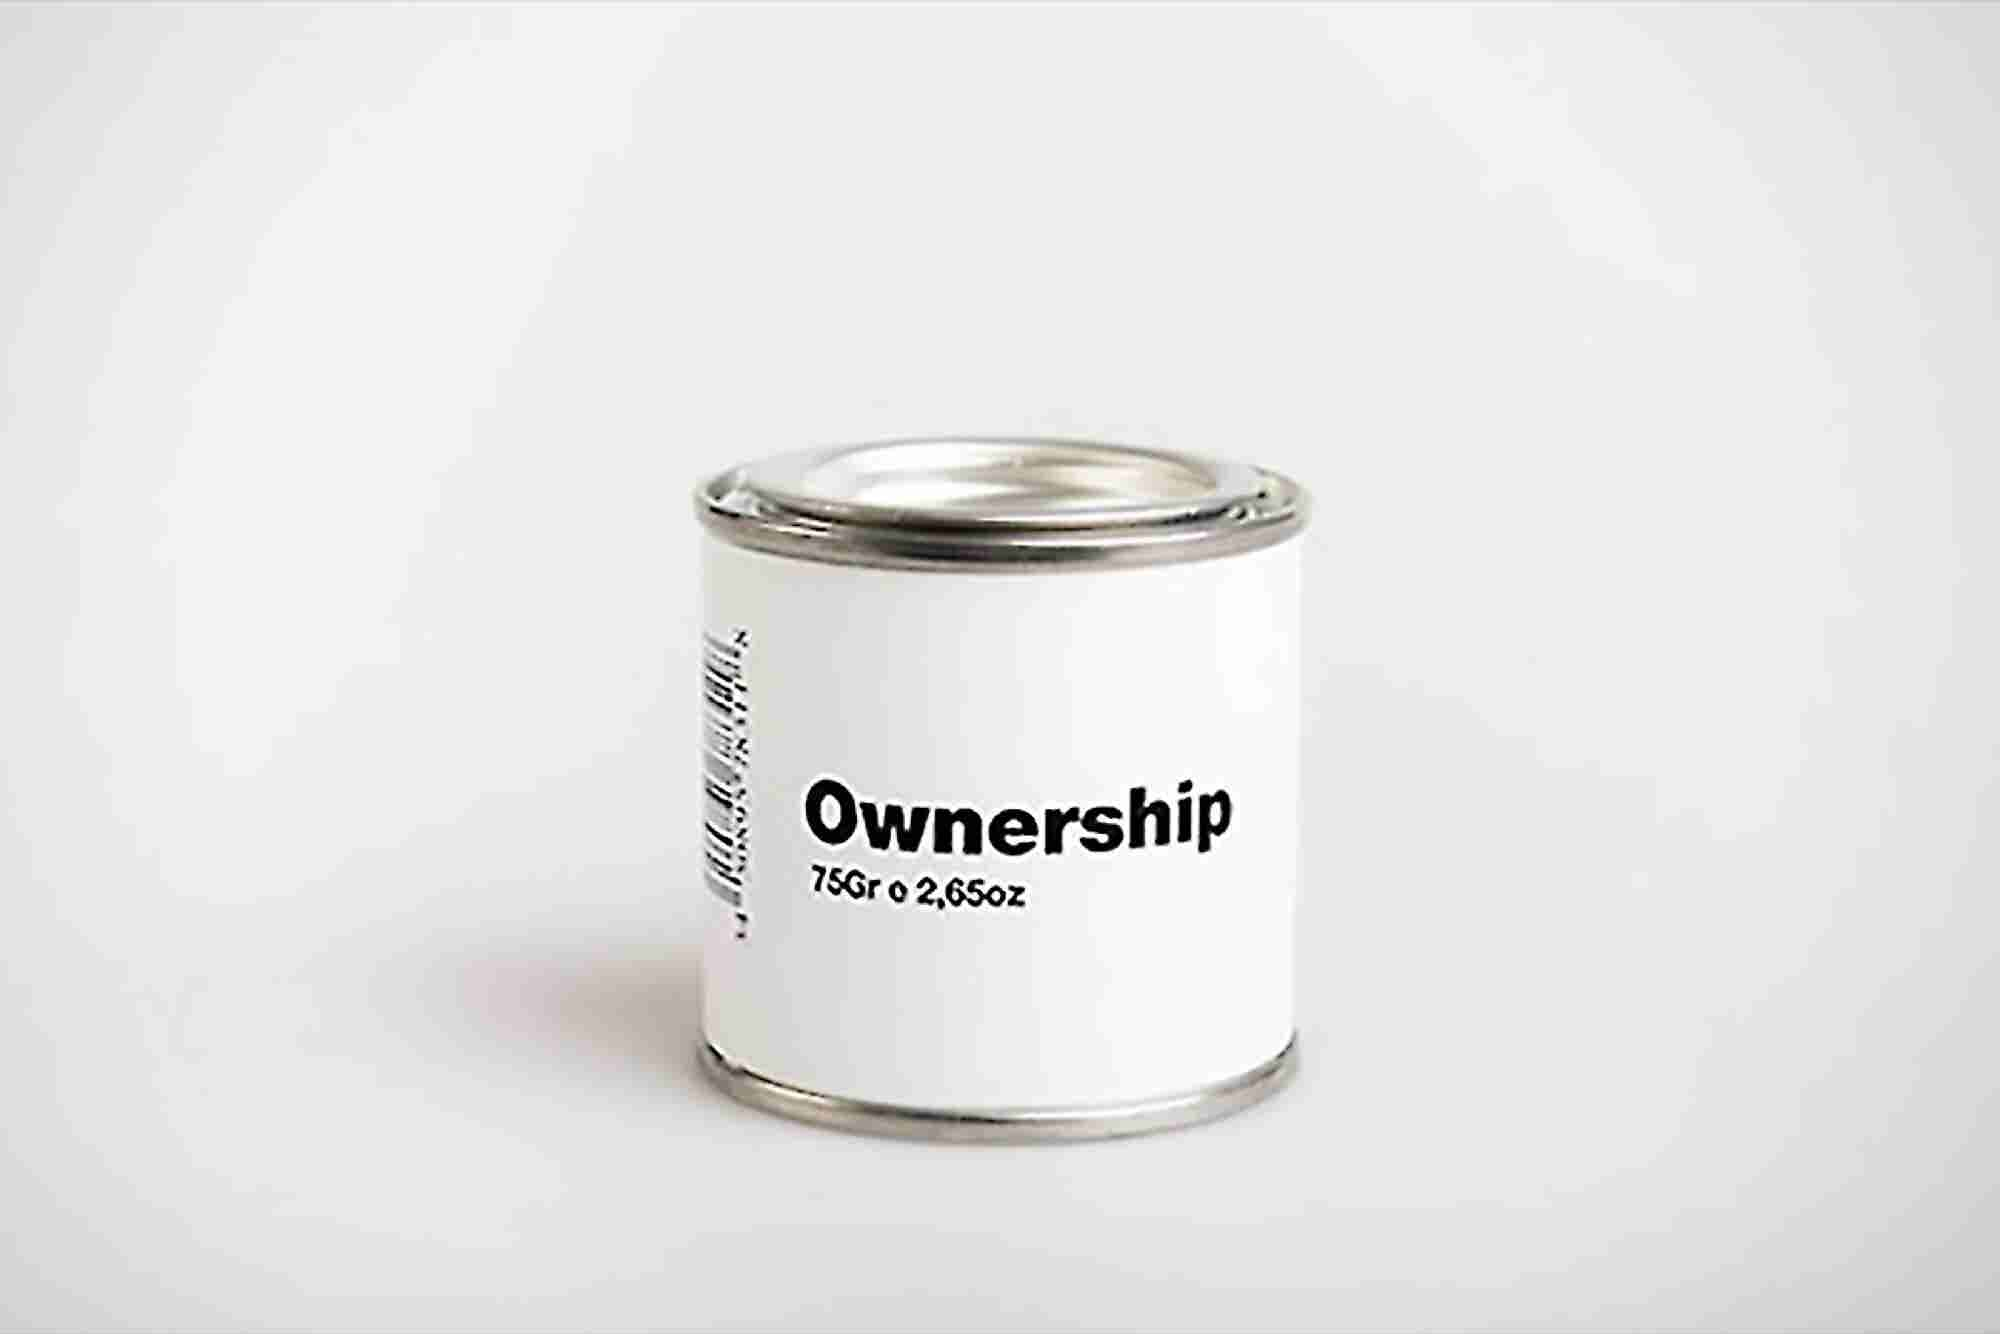 Build a Culture of Ownership at Your Company